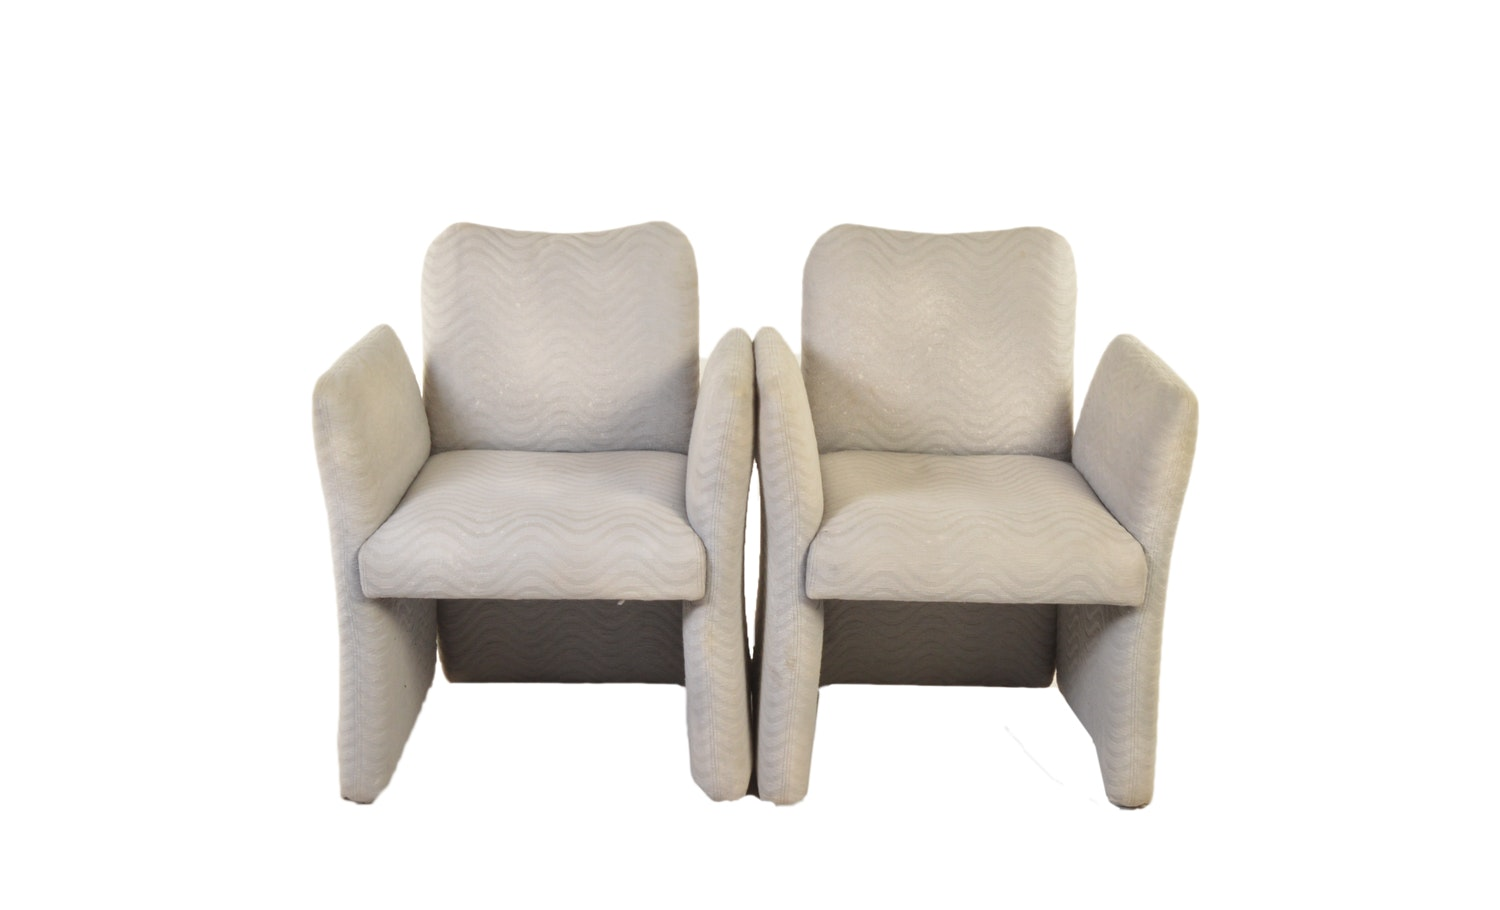 Vintage Milo Baughman Upholstered Armchairs